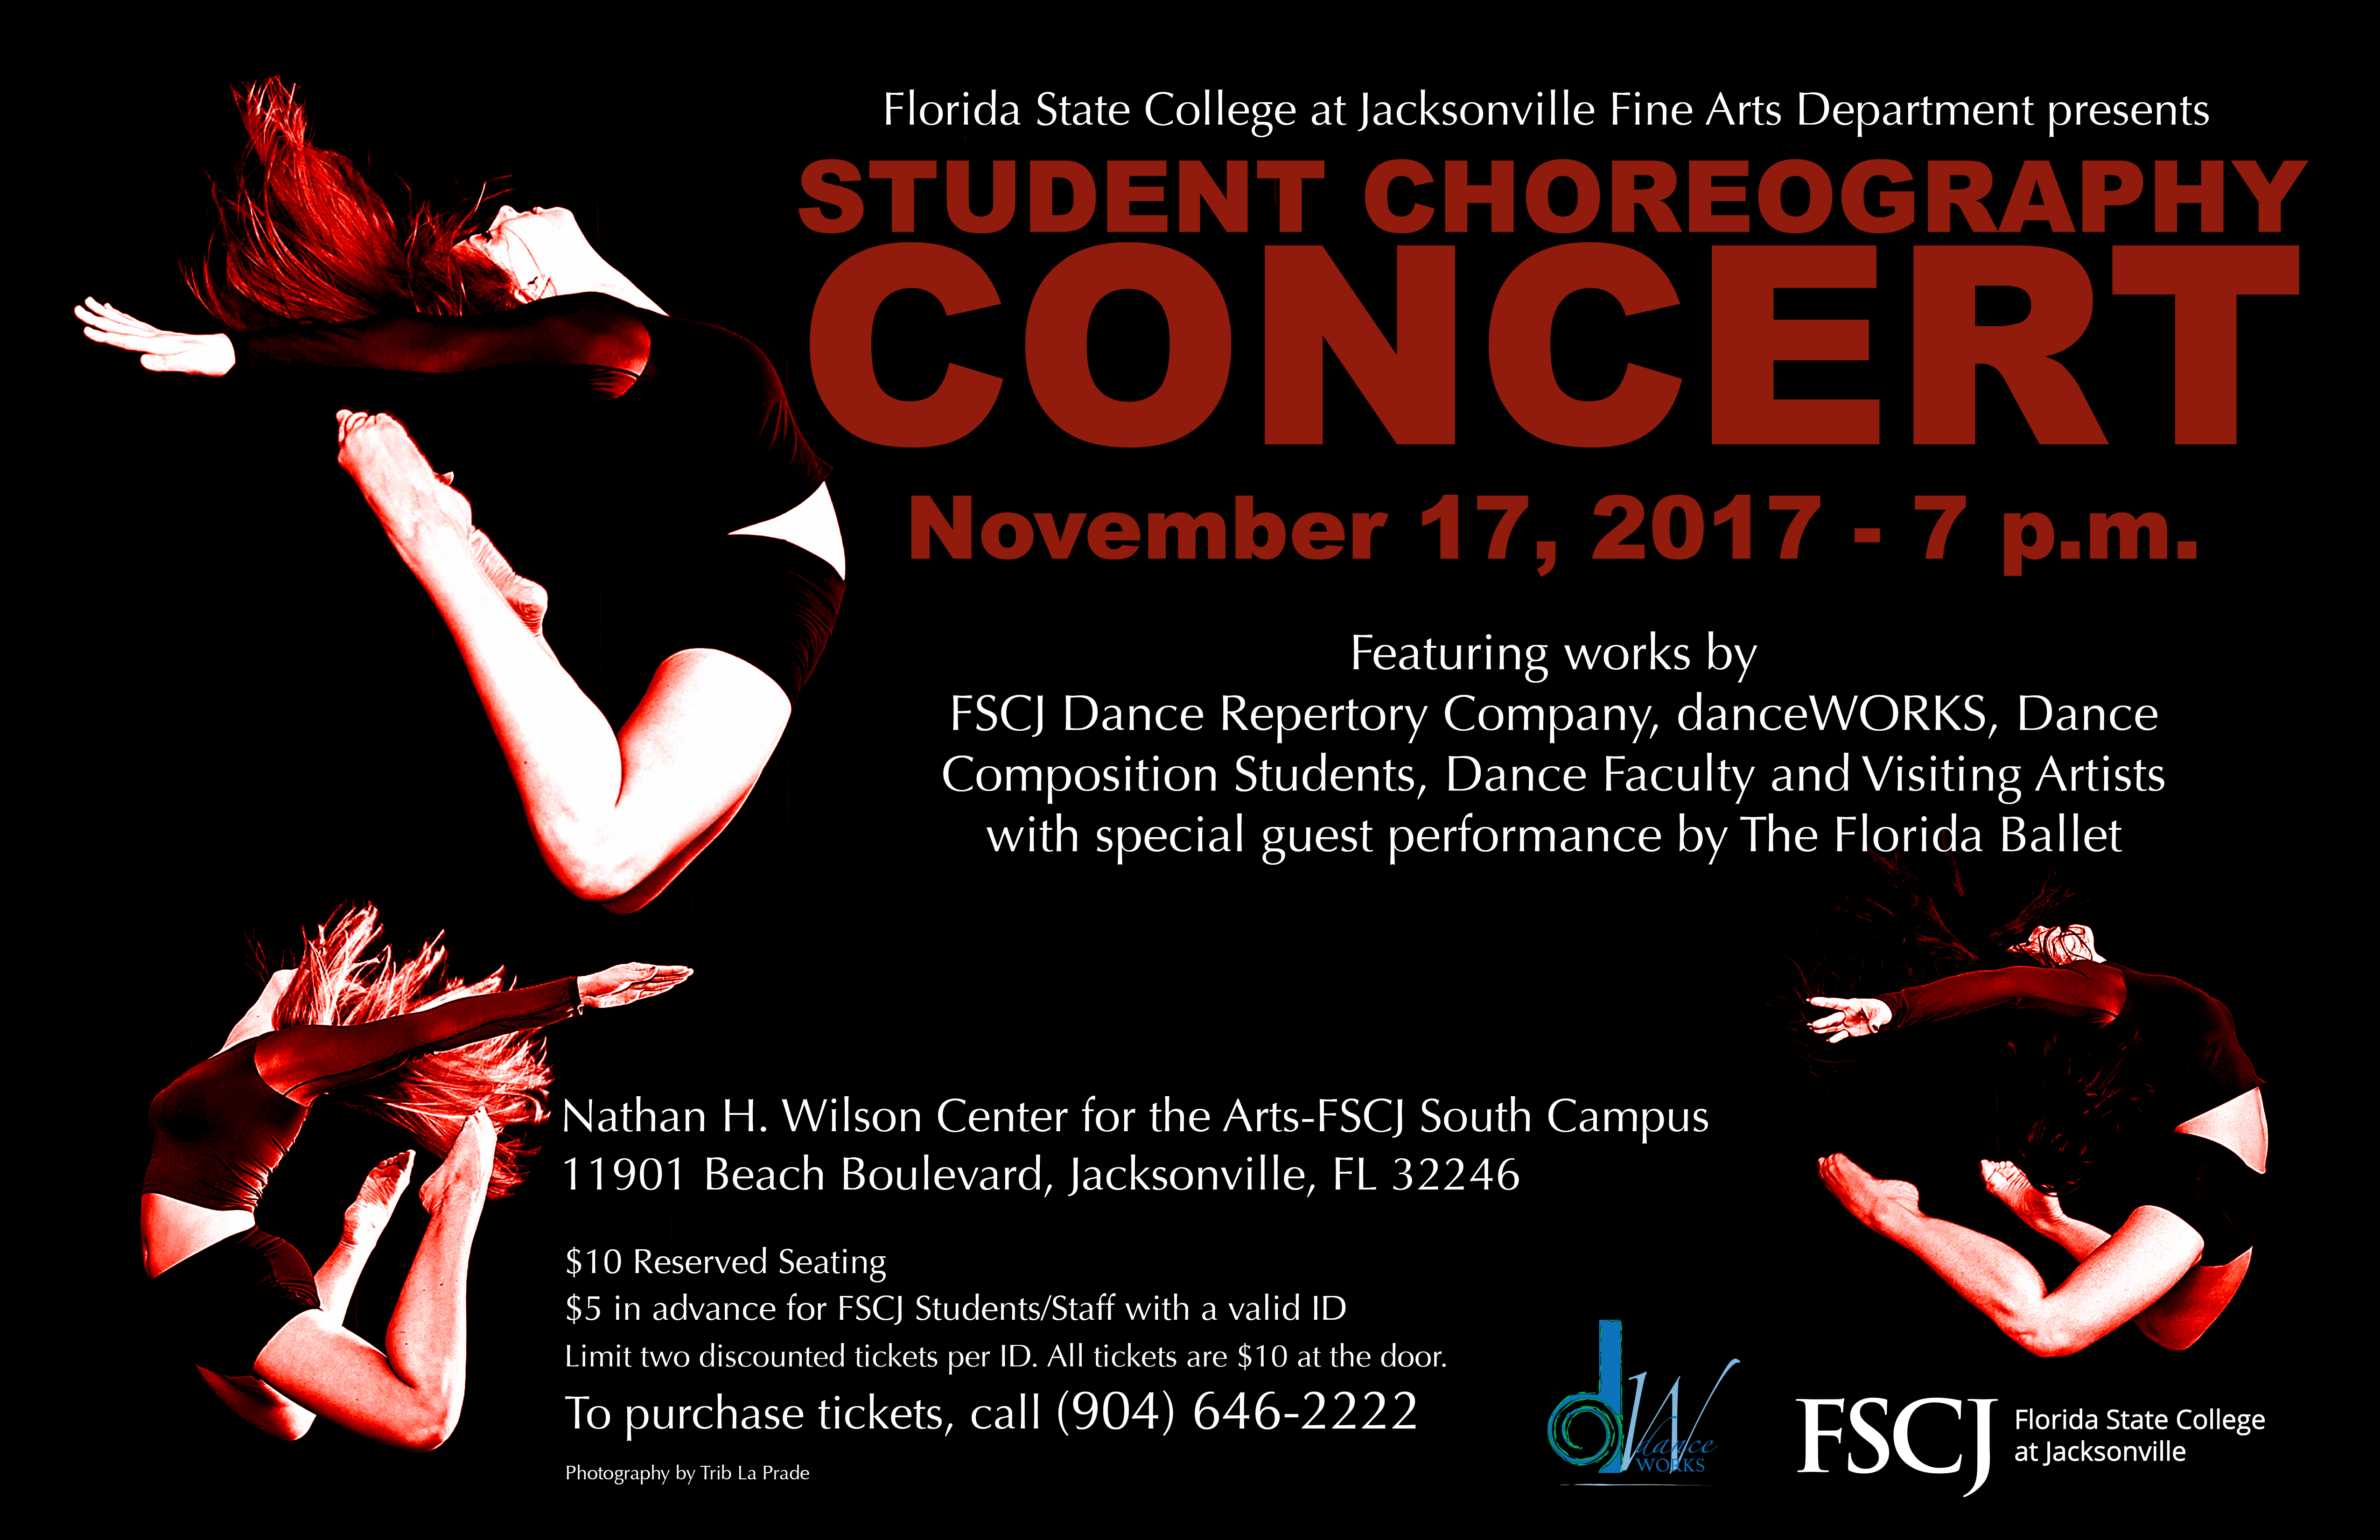 2017 Student Choreography Concert